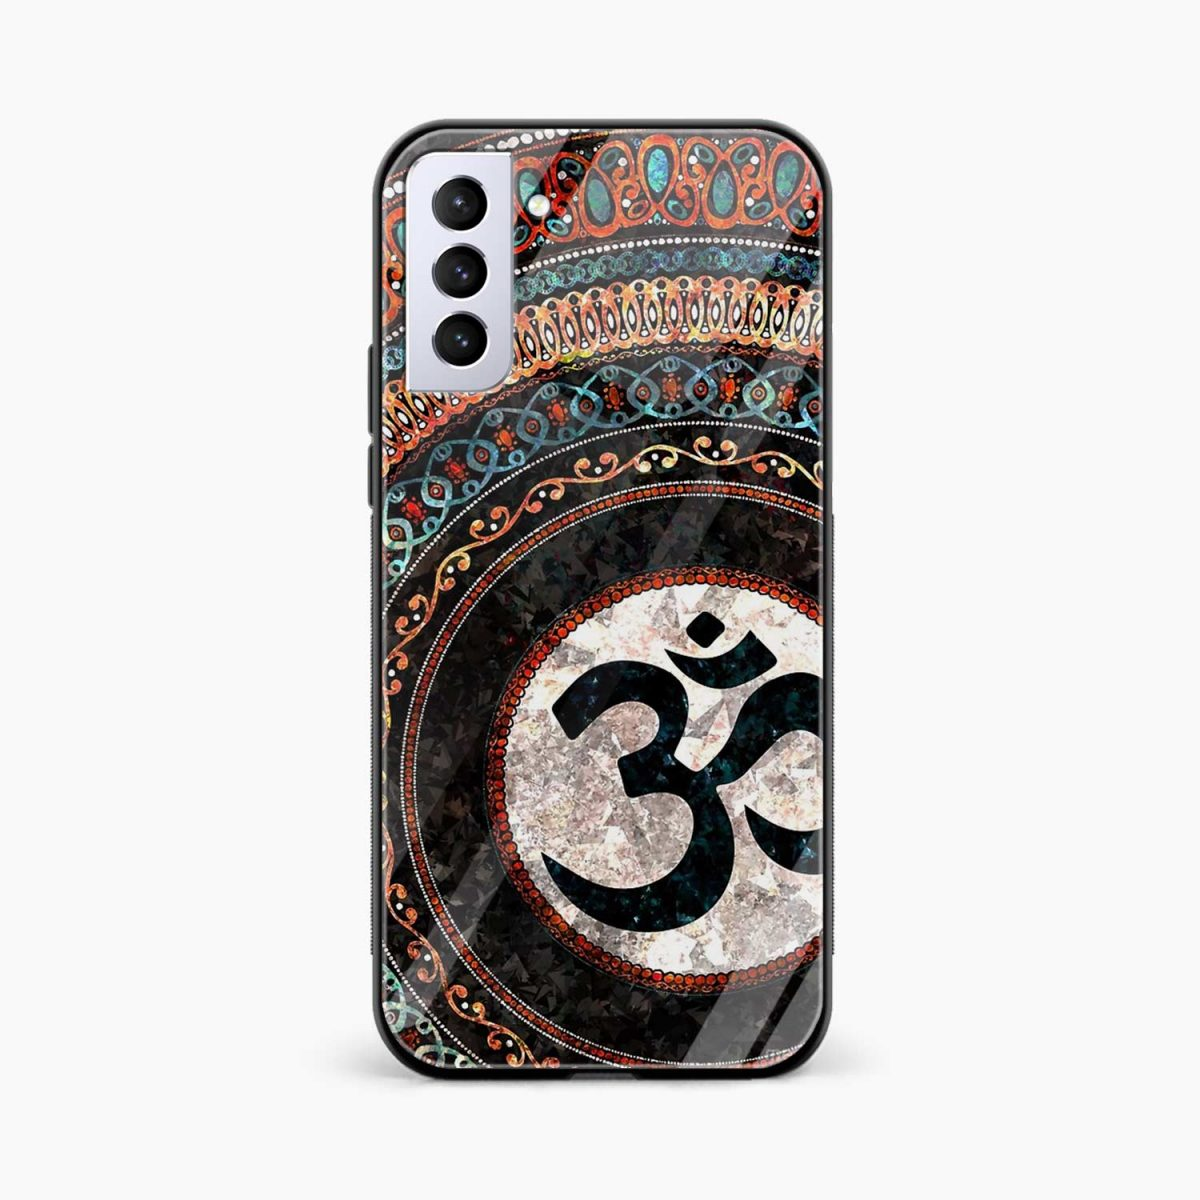 om glass front view samsung s21 plug back cover